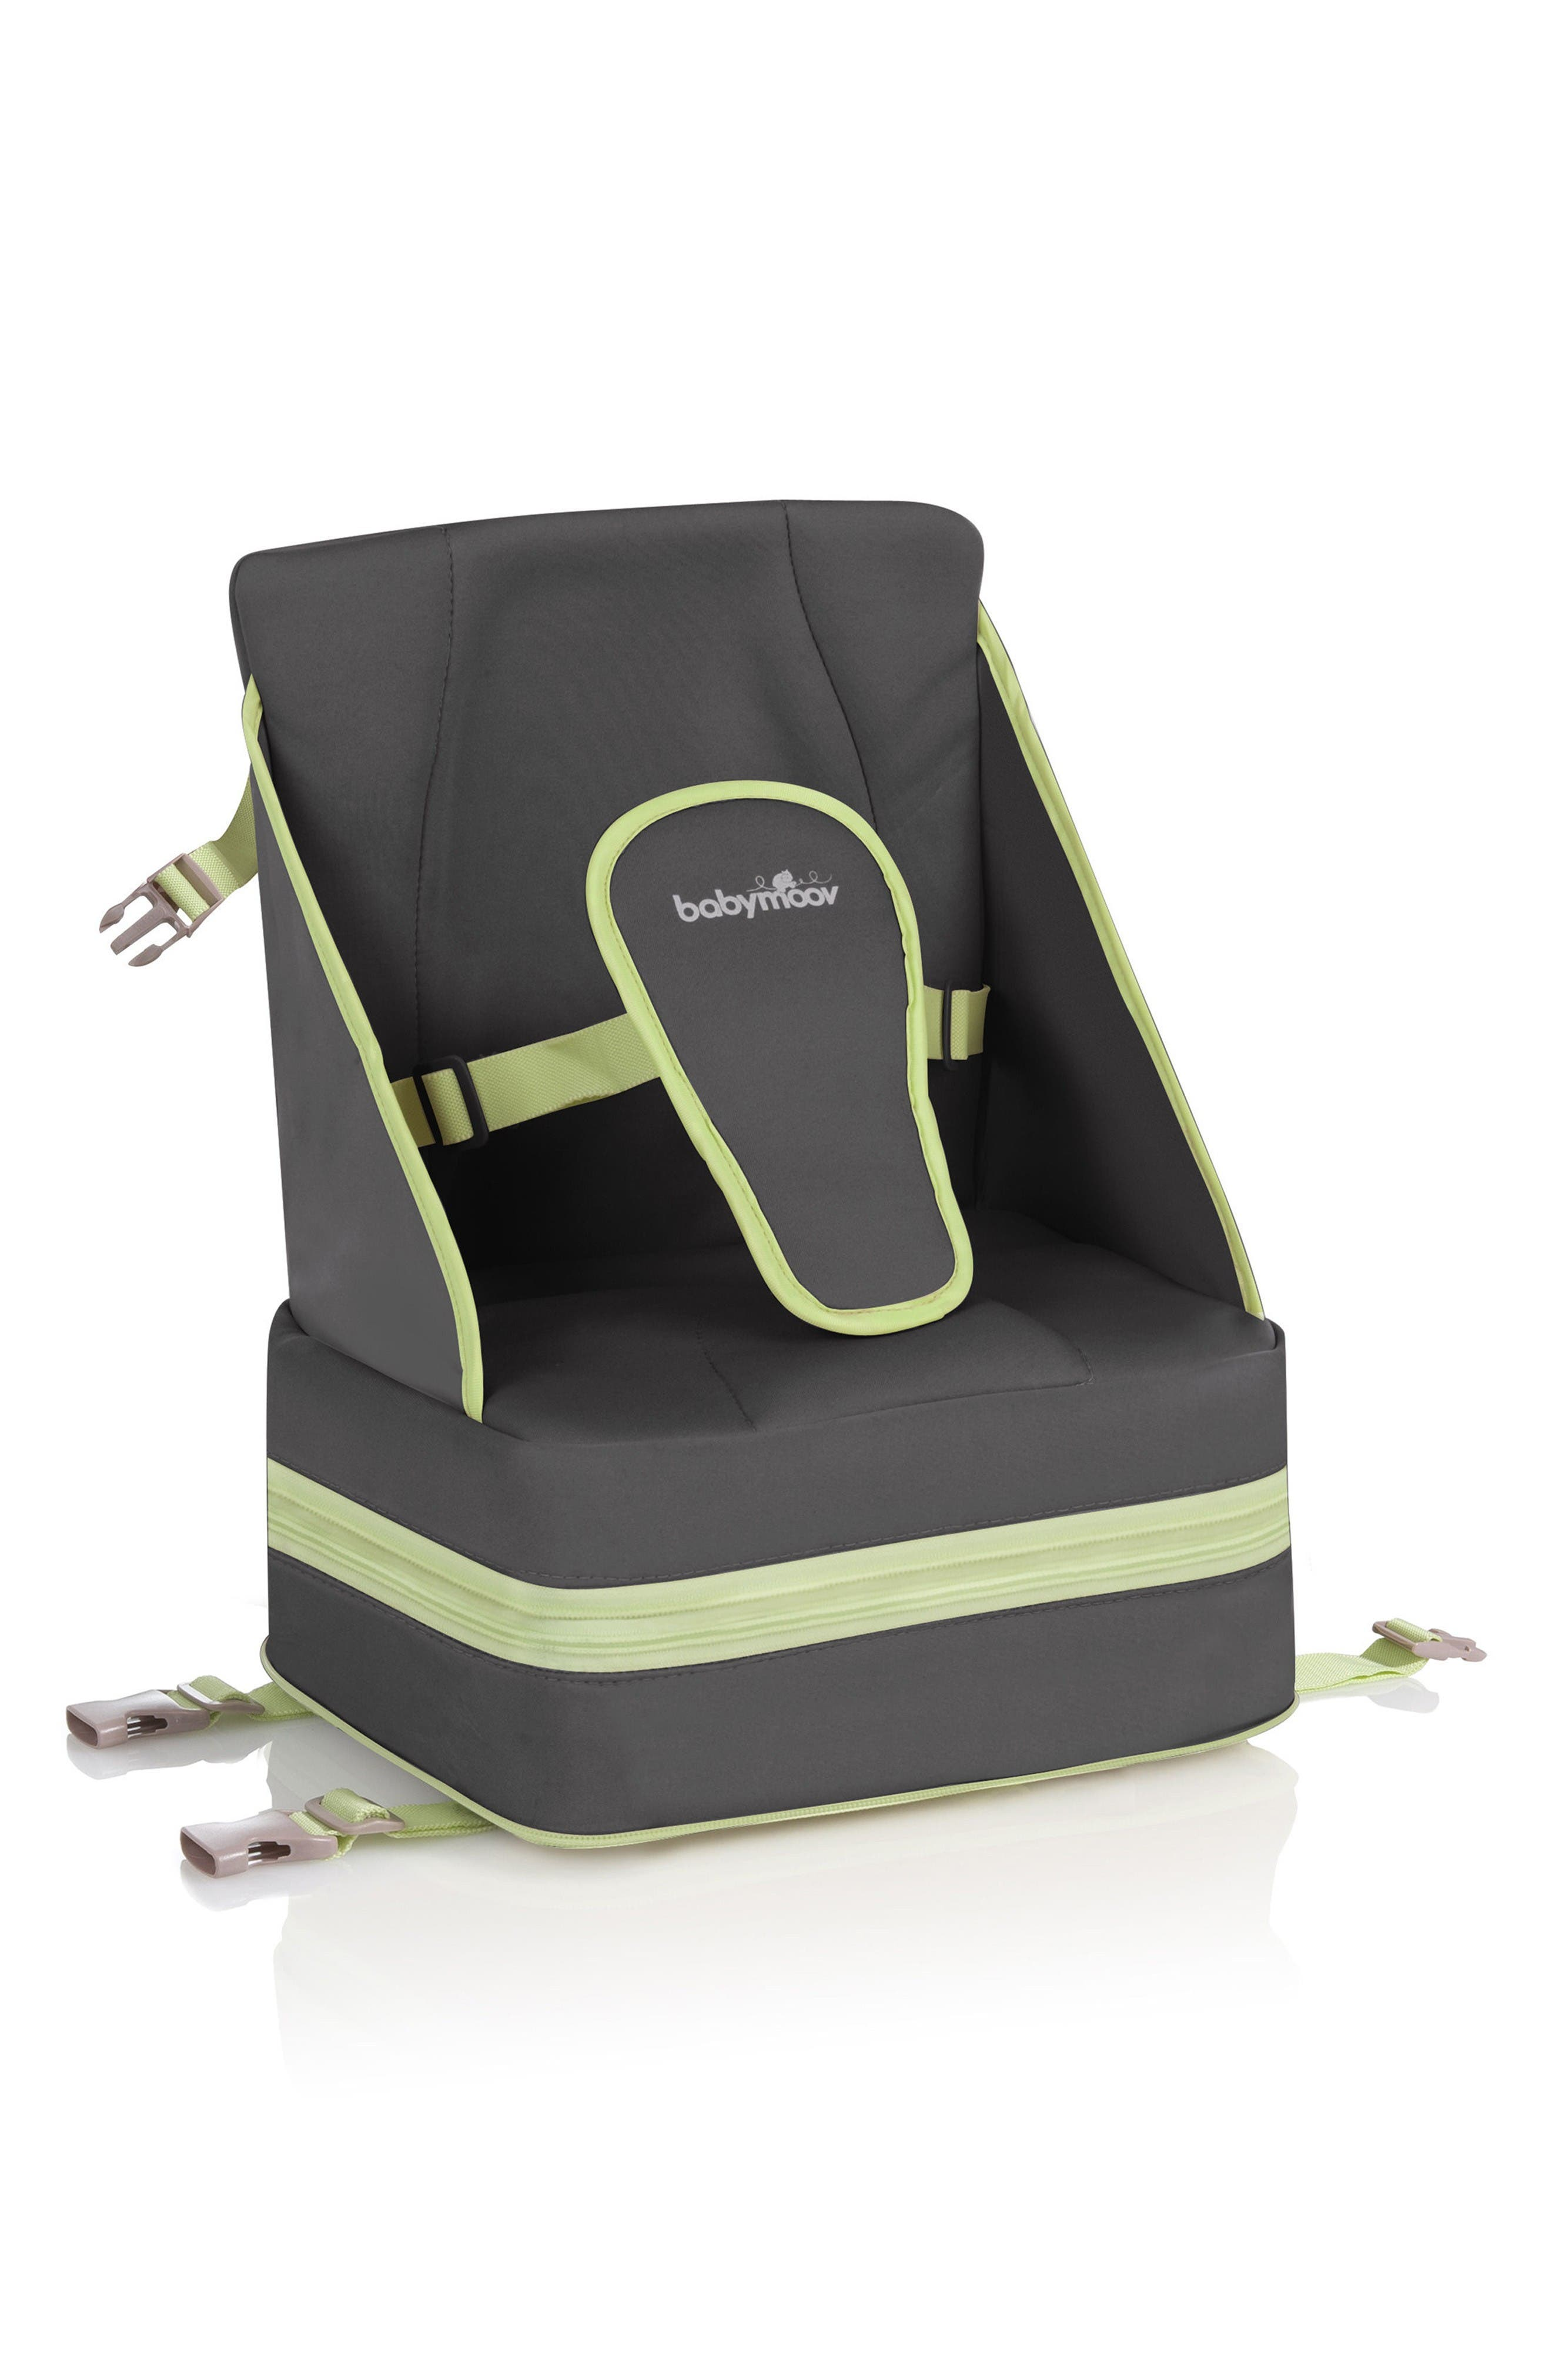 Main Image - Babymoov Up & Go Booster Seat